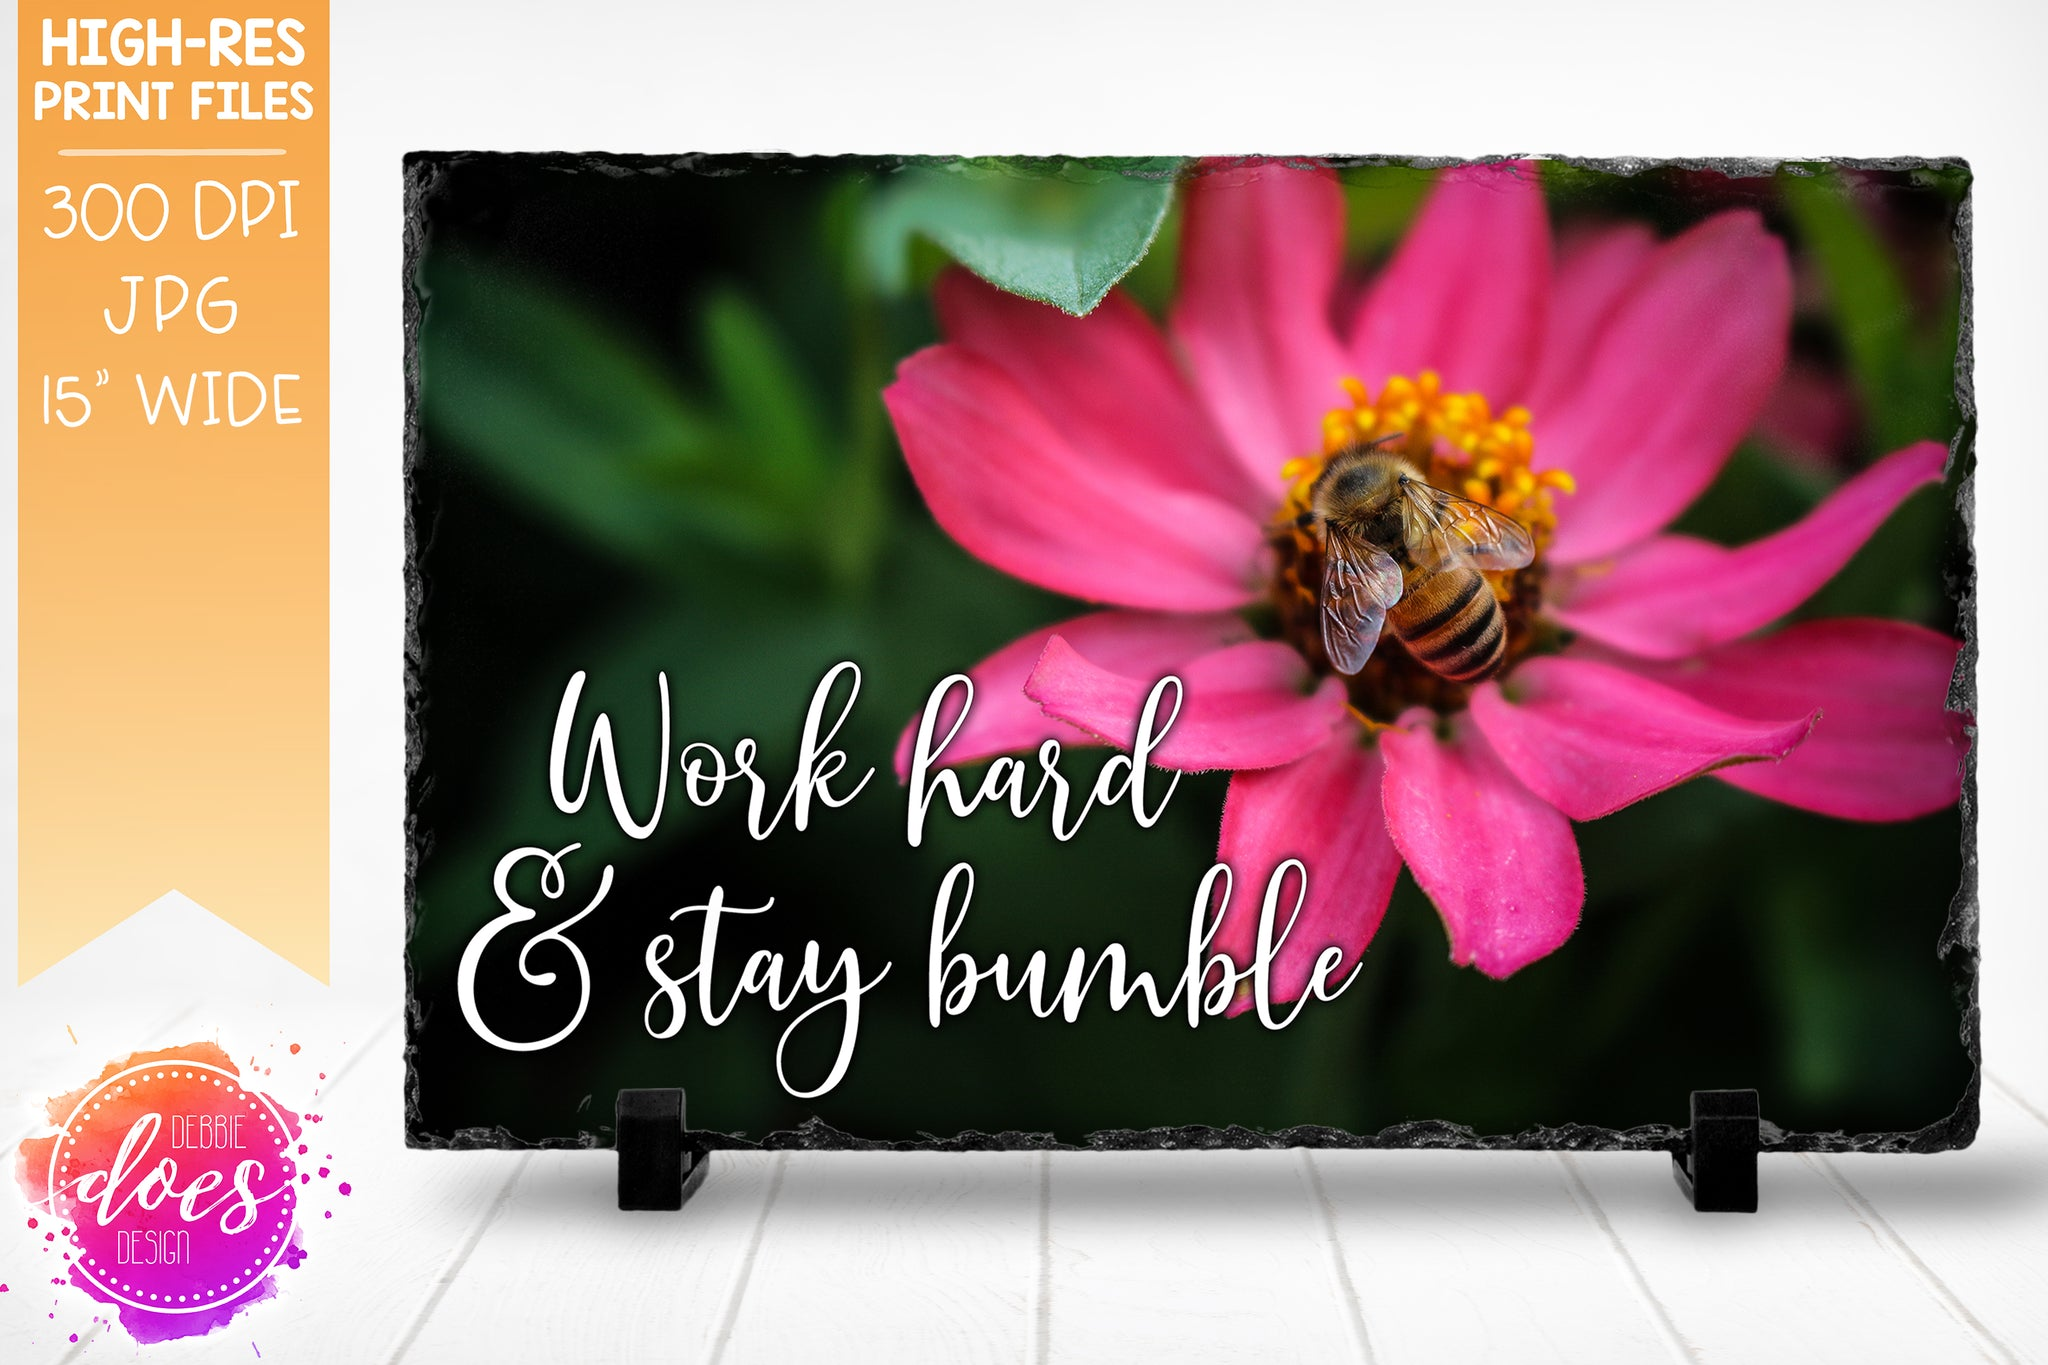 Work Hard & Stay Bumble - Bee Photo Design - Sublimation/Printable Design